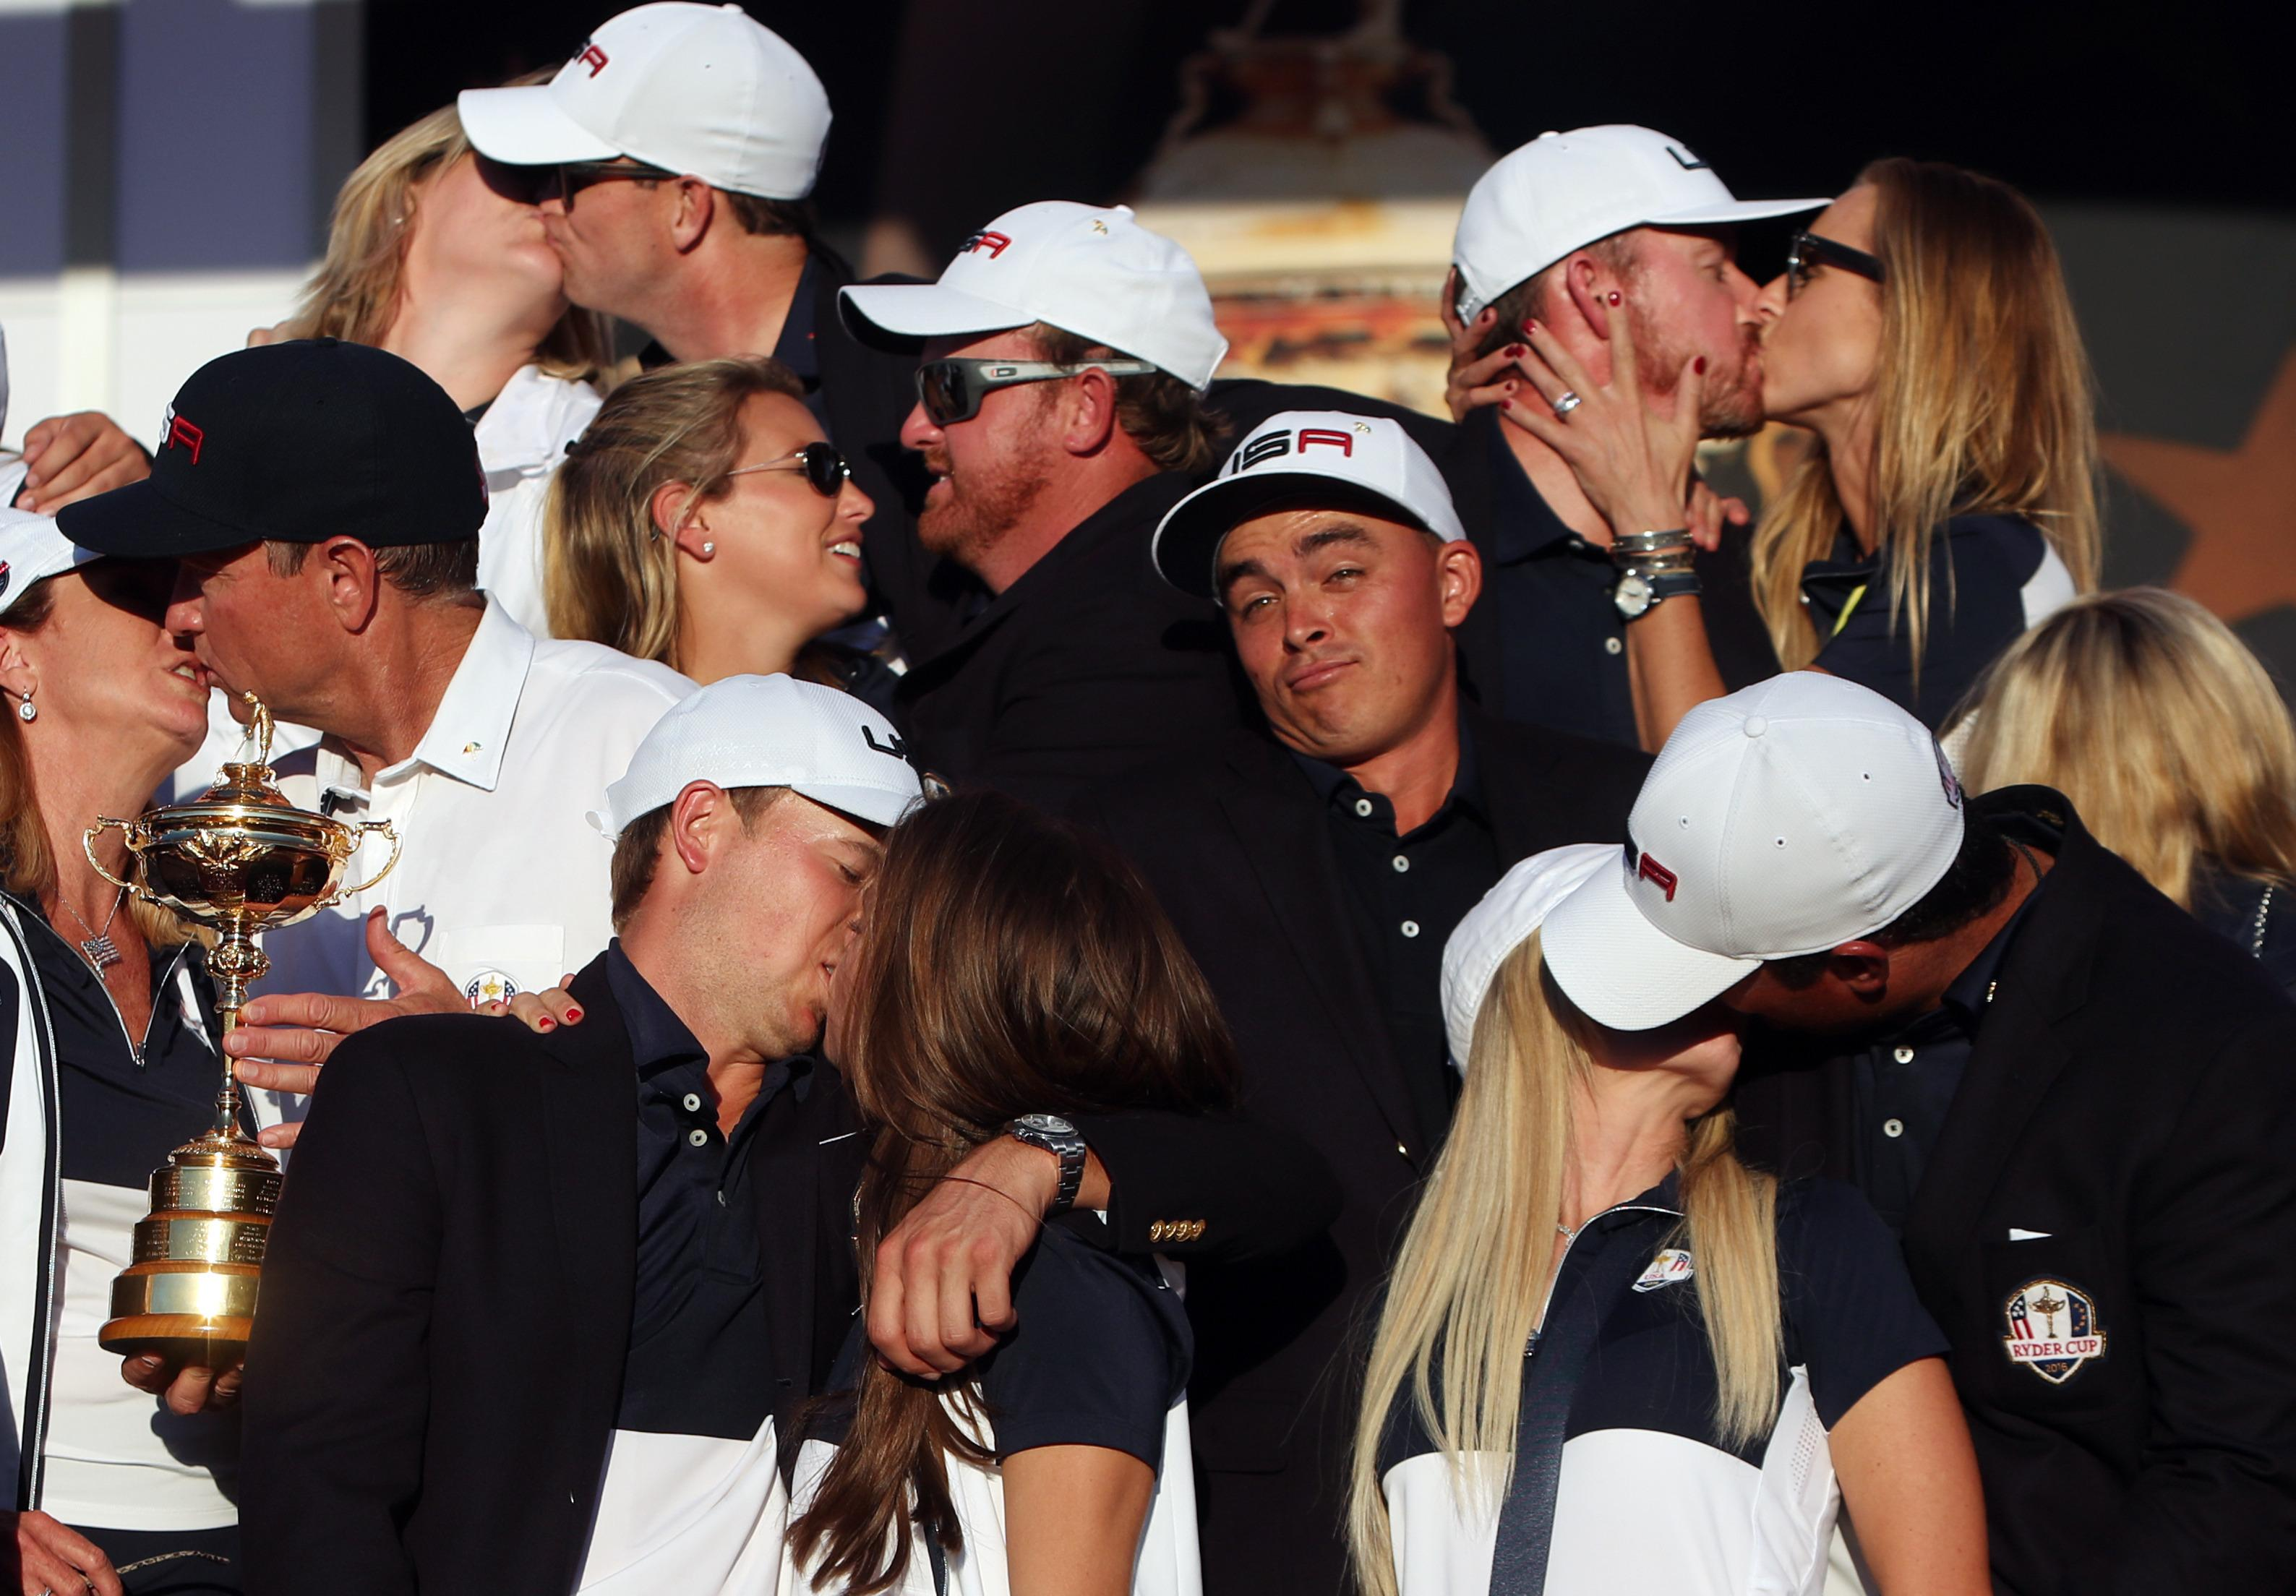 Rickie Fowler made up for his famous picture at the last Ryder Cup